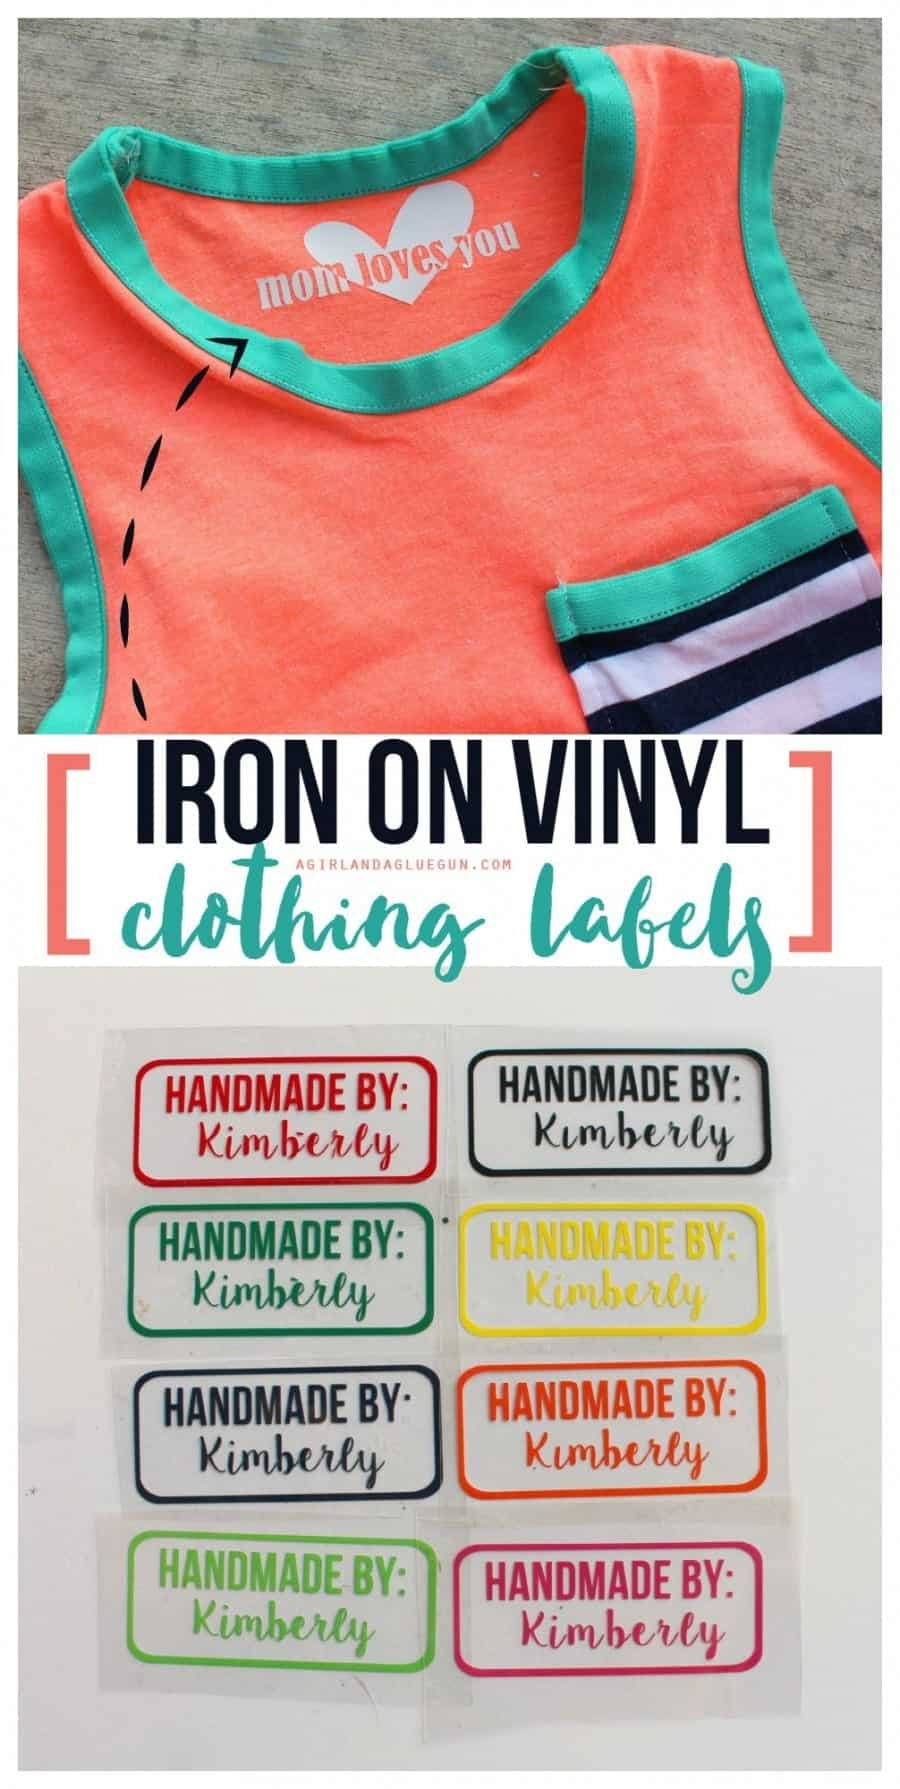 easy-clothing-labels-made-with-iron-on-heat-transfer-vinyl-a-girl-and-a-glue-gun-900x1789